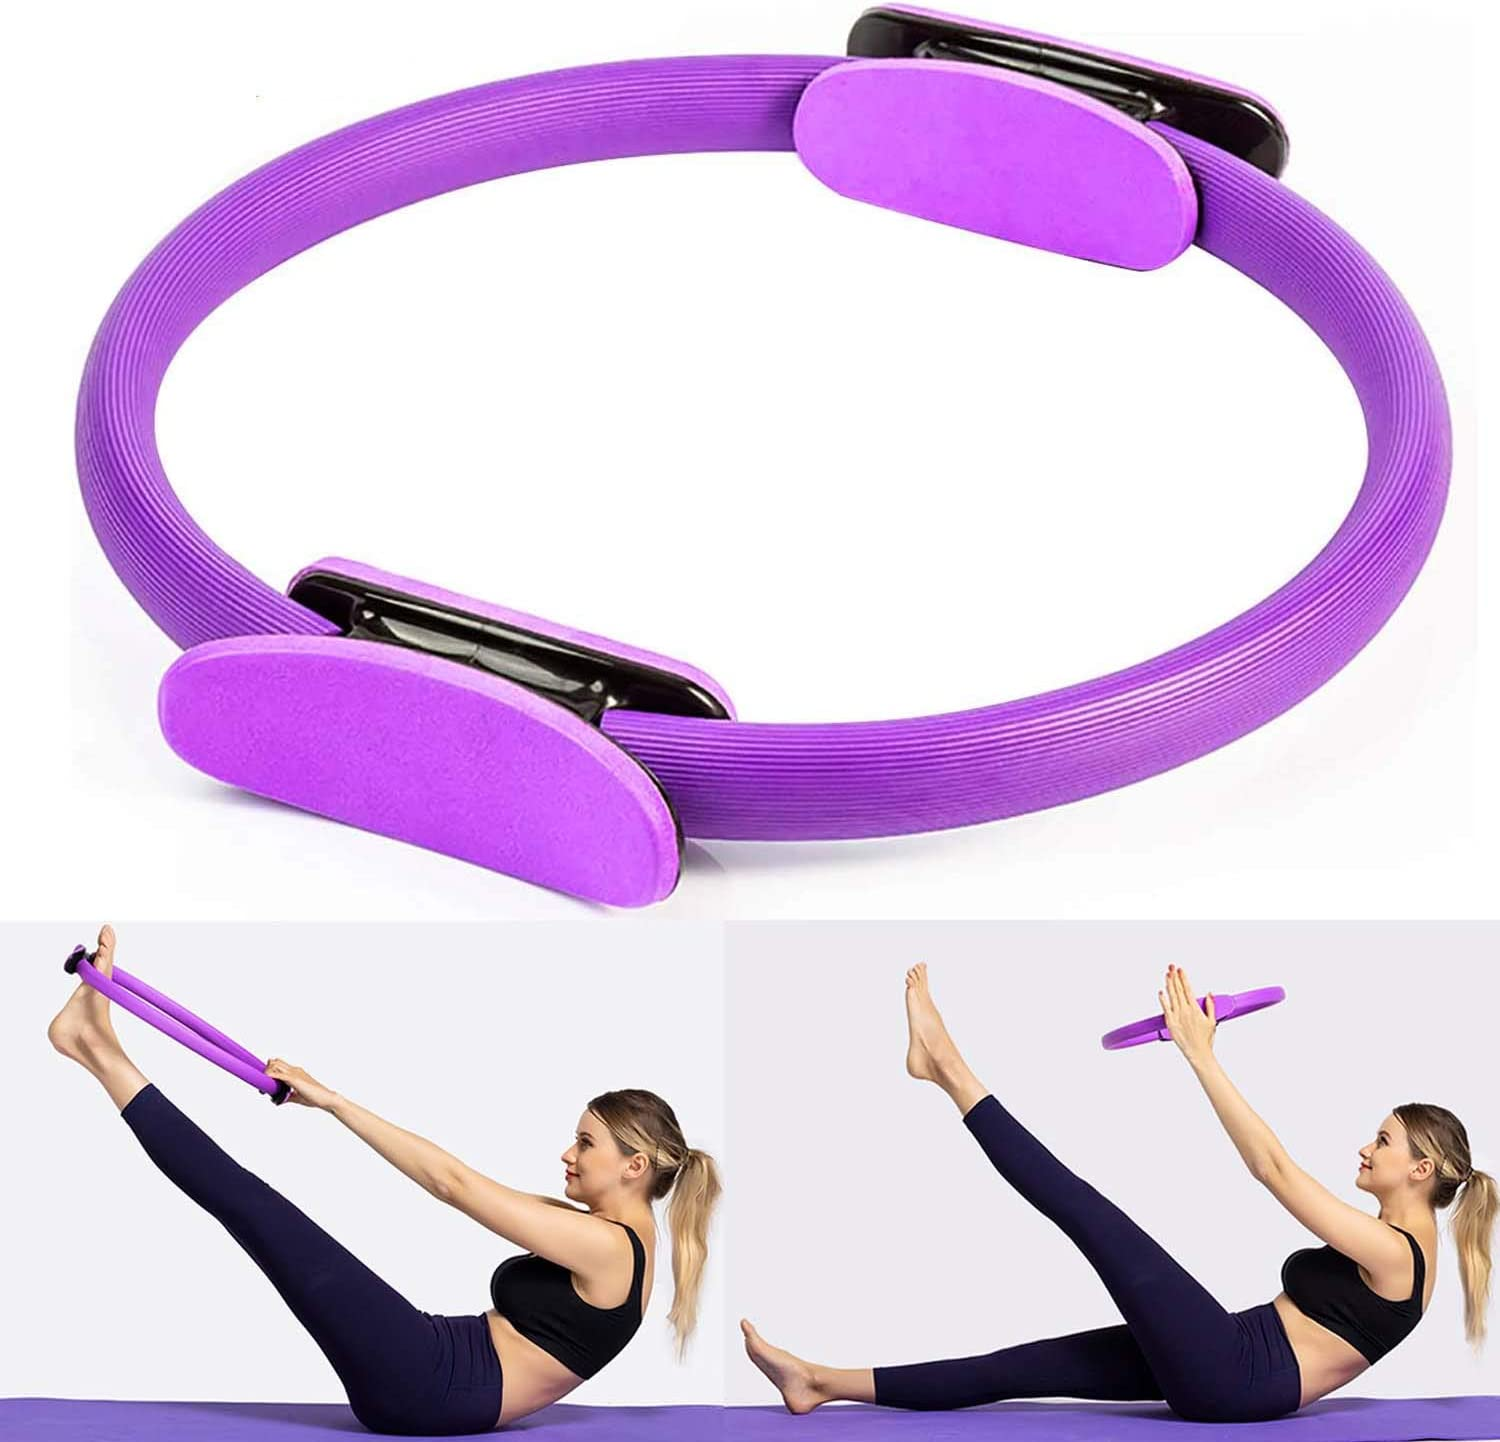 Pilates Ring,Portable Pilates Circle 15.7 inch Dual Grip Handles Yoga Circle Fitness Circle for Toning and Strengthening Thighs,Abs,Legs